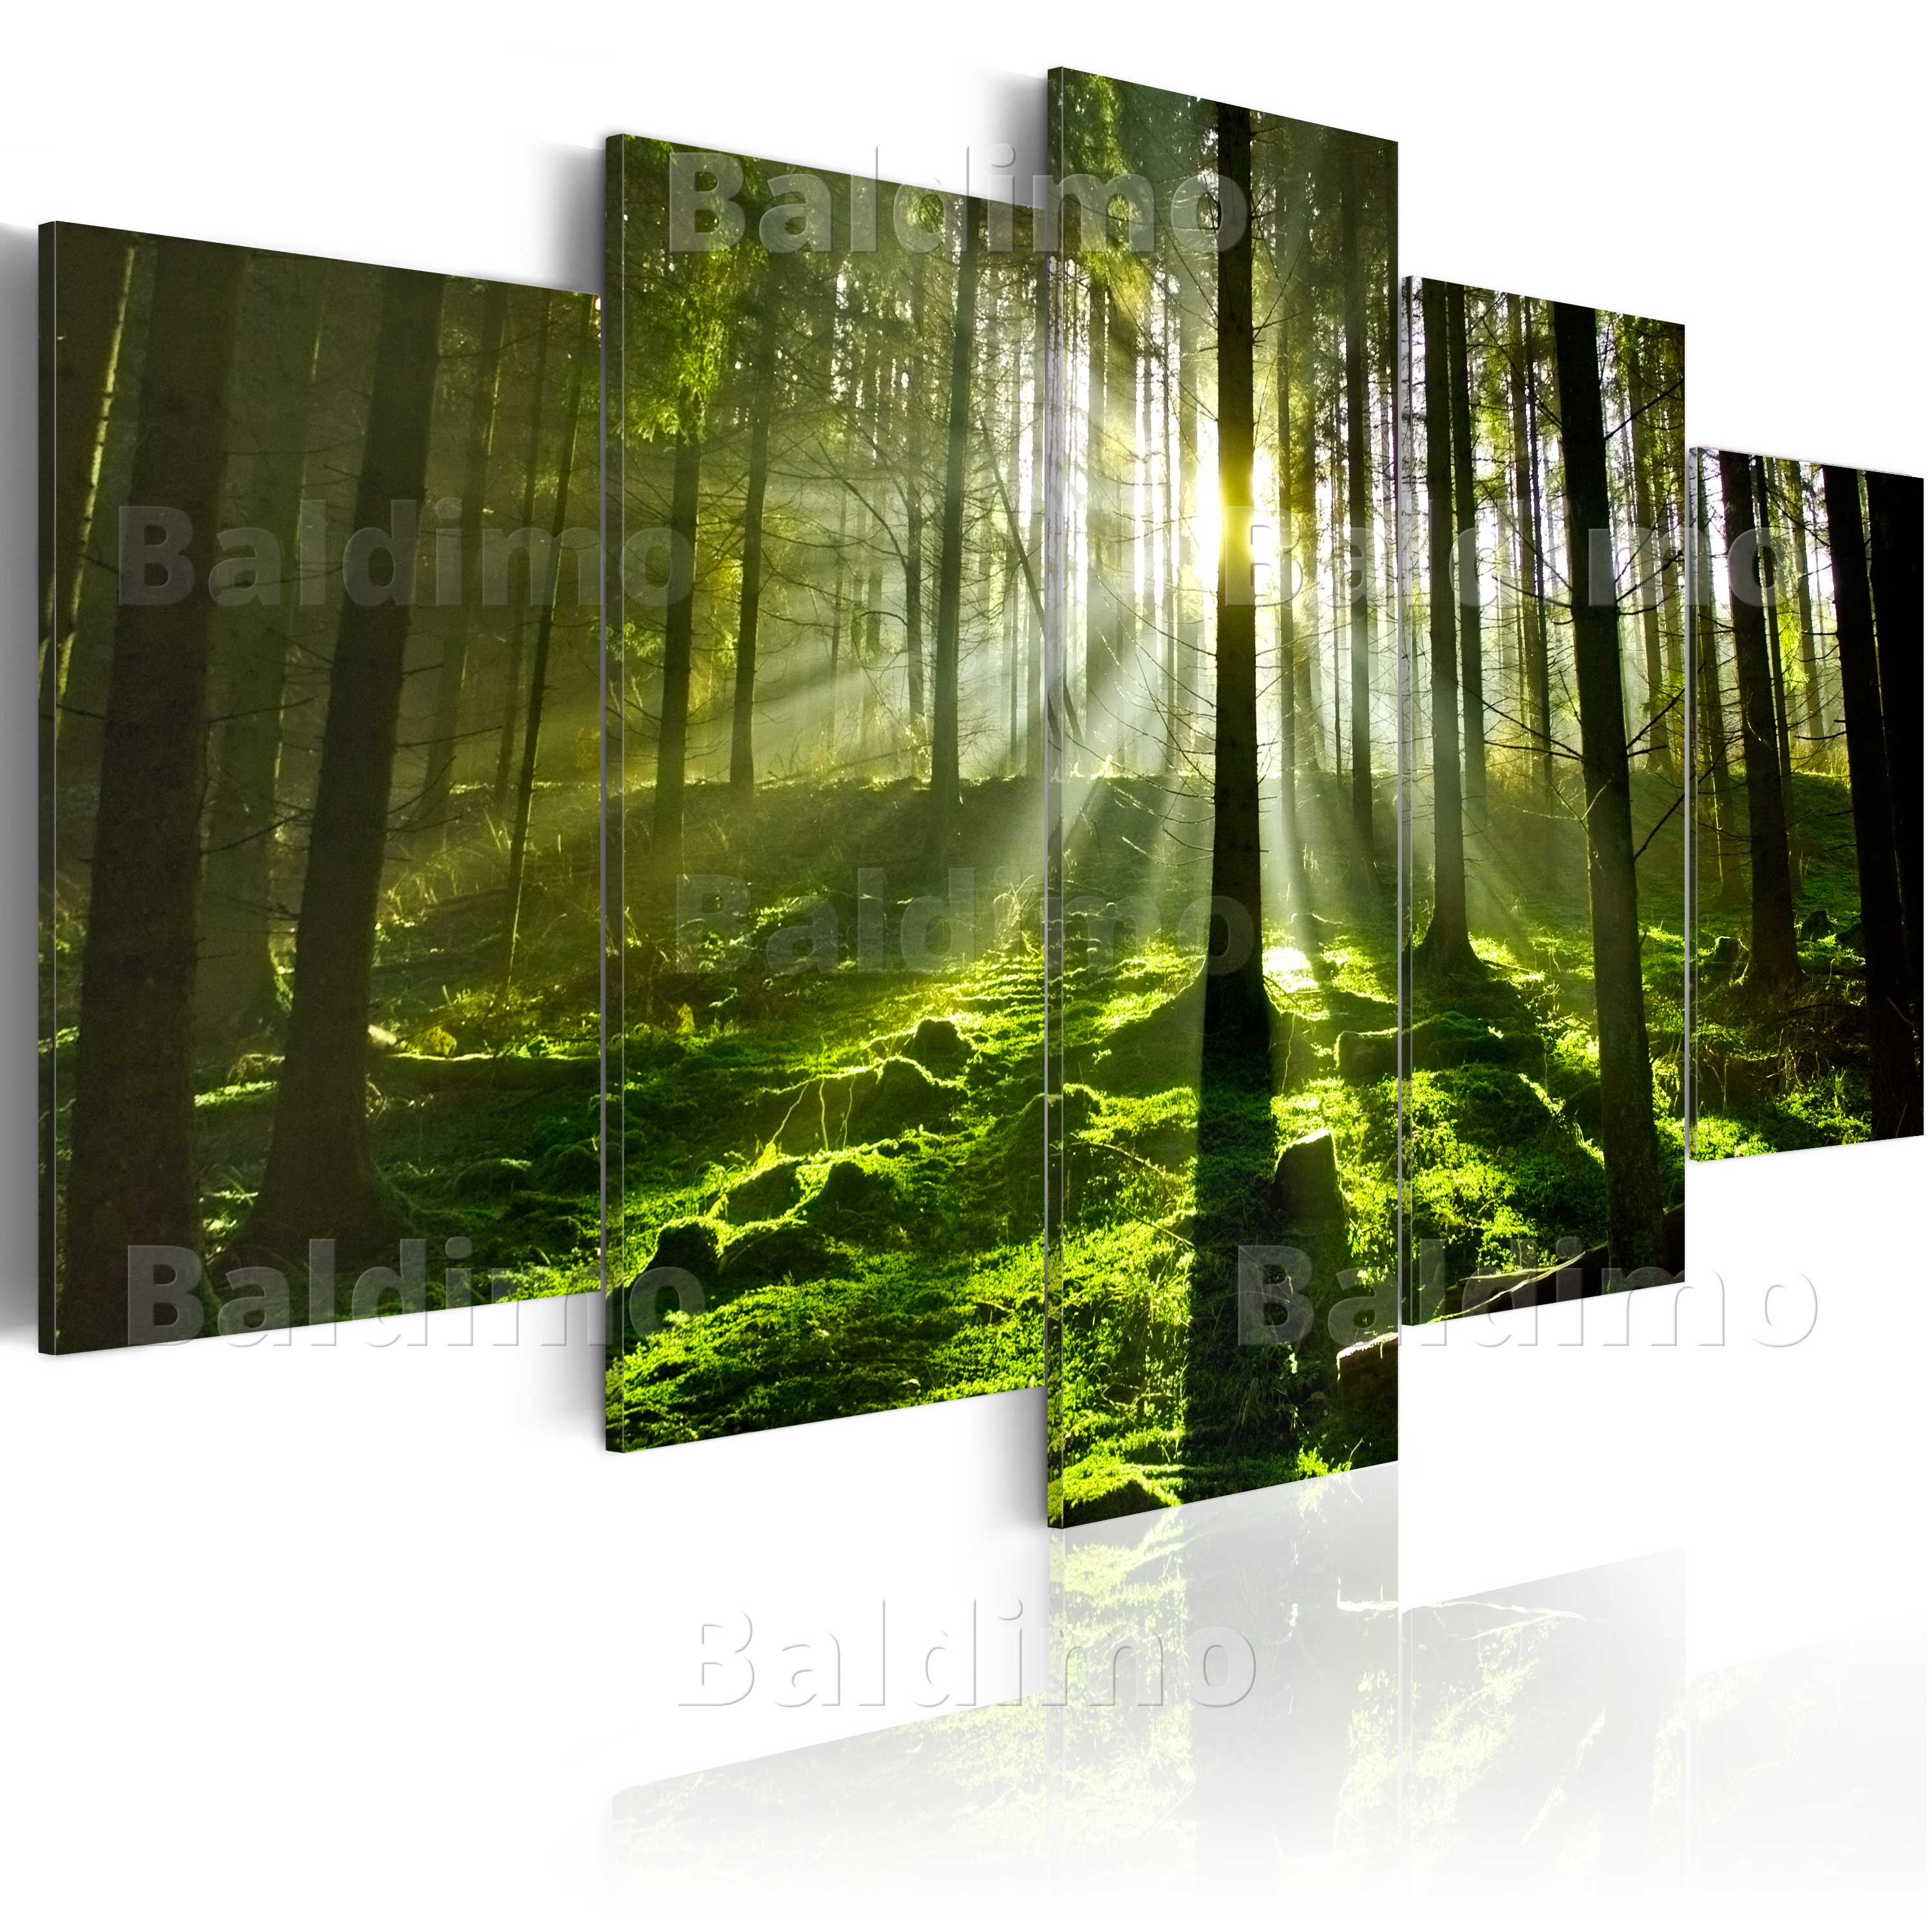 large canvas wall art print image picture photo nature wald 030213 32 ebay. Black Bedroom Furniture Sets. Home Design Ideas